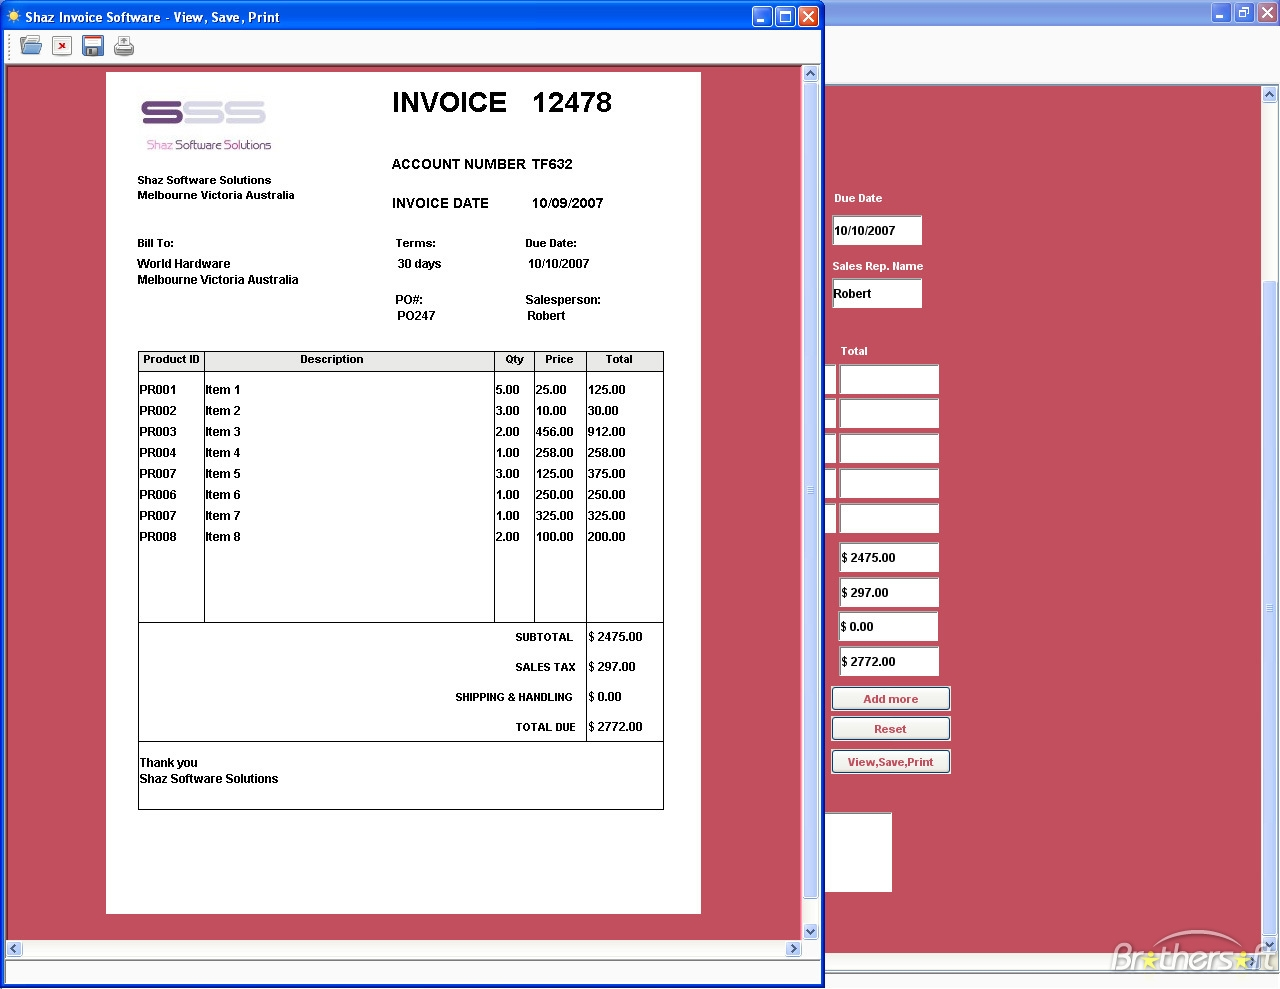 download free shaz invoice software shaz invoice software 100 free download invoice